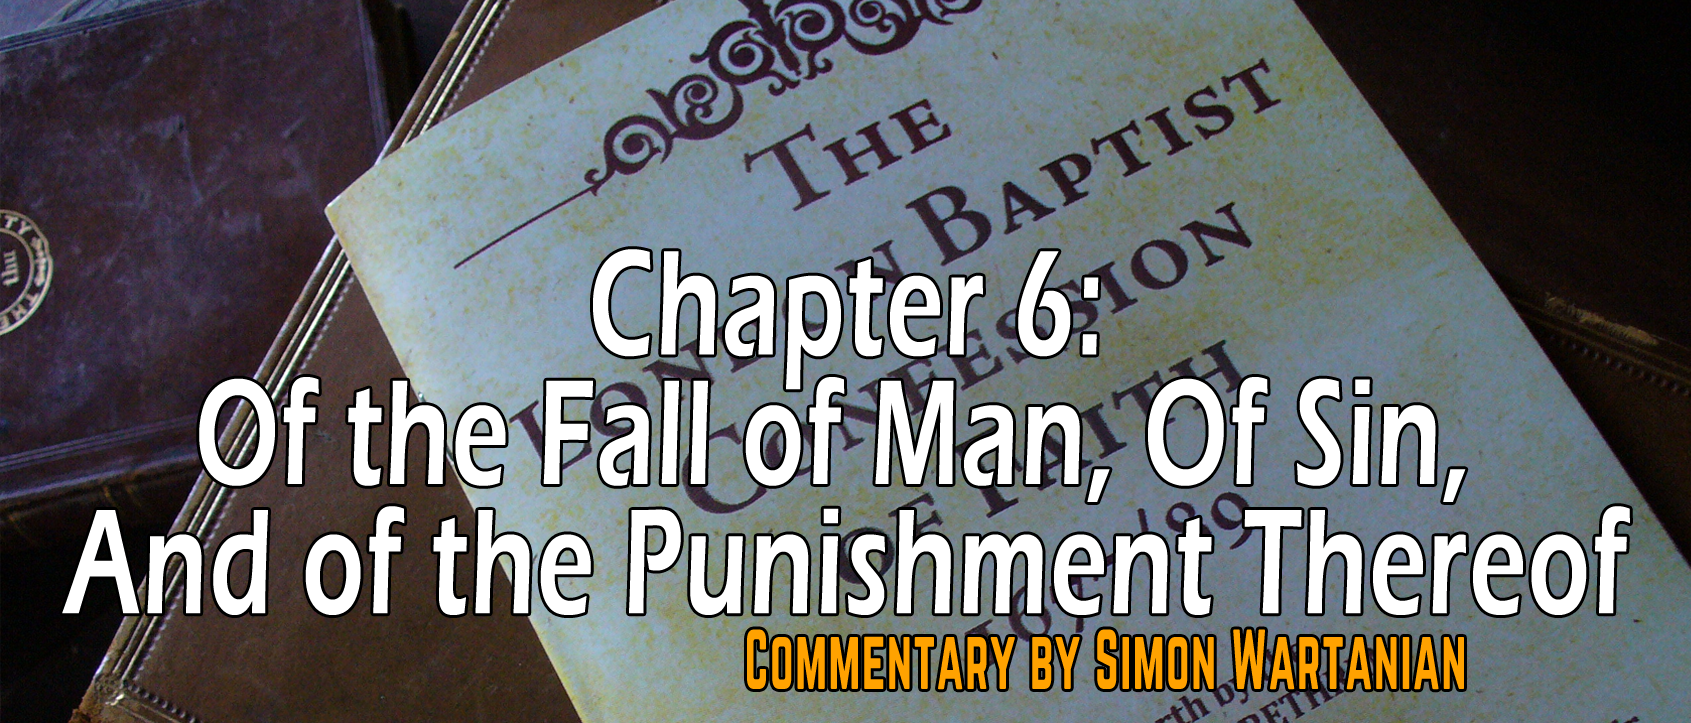 1689 Baptist Confession Chapter 6: Of the Fall of Man, Of Sin, And of the Punishment Thereof - Commentary